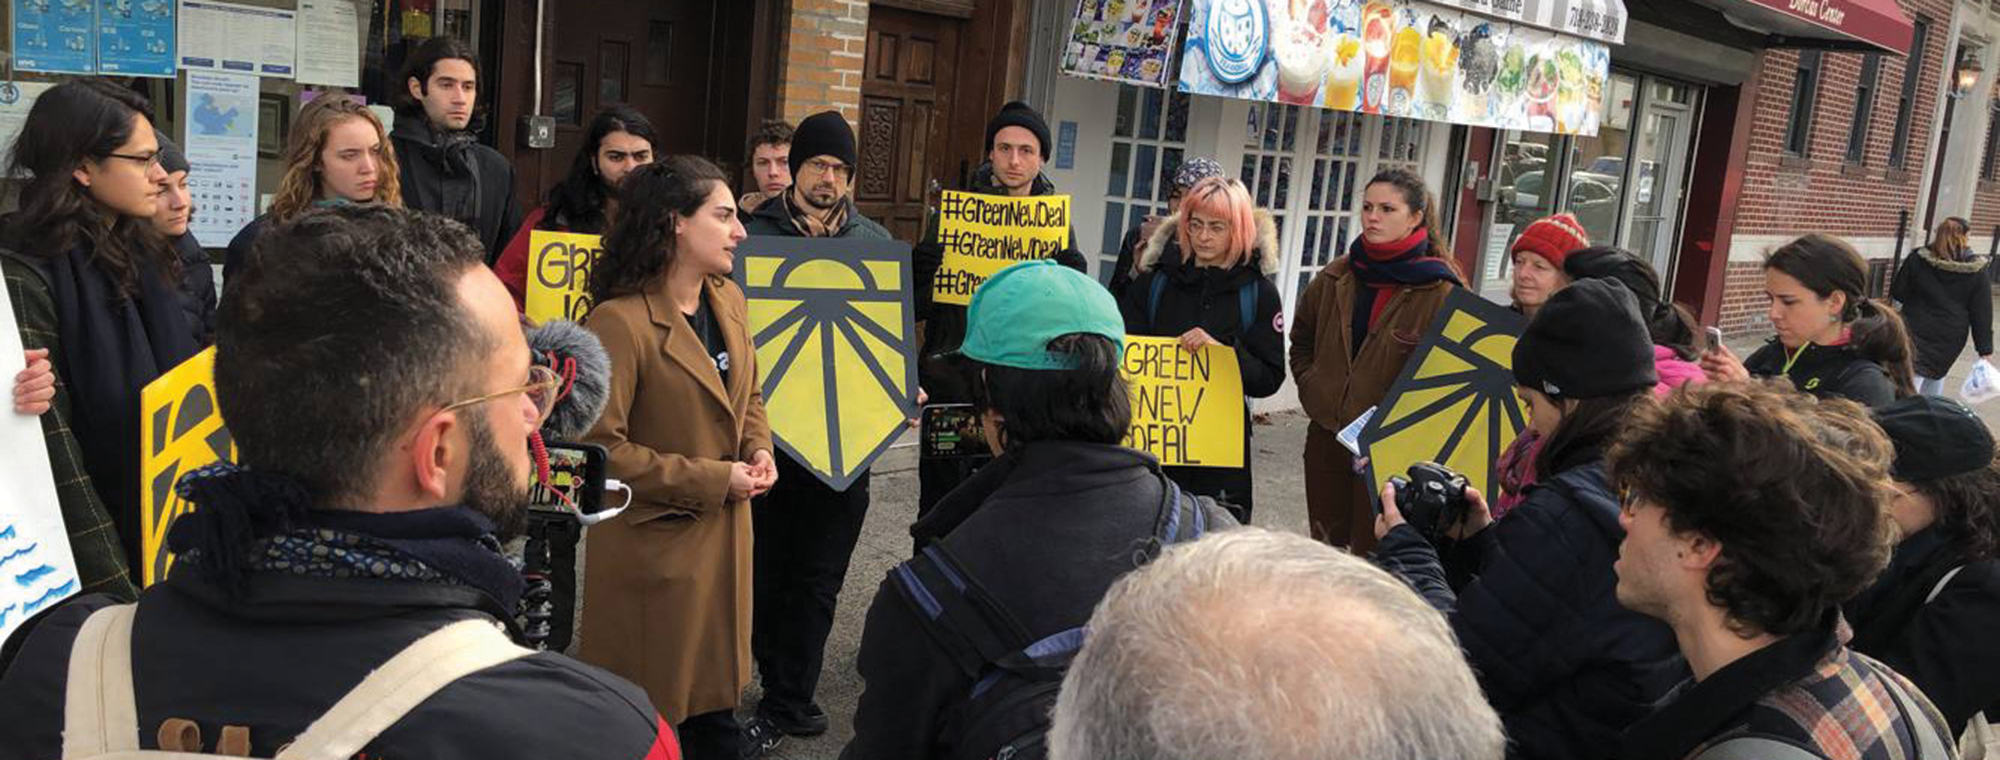 Organizing event with the Sunrise Movement in support of the Green New Deal. Image: Beyond the Bomb